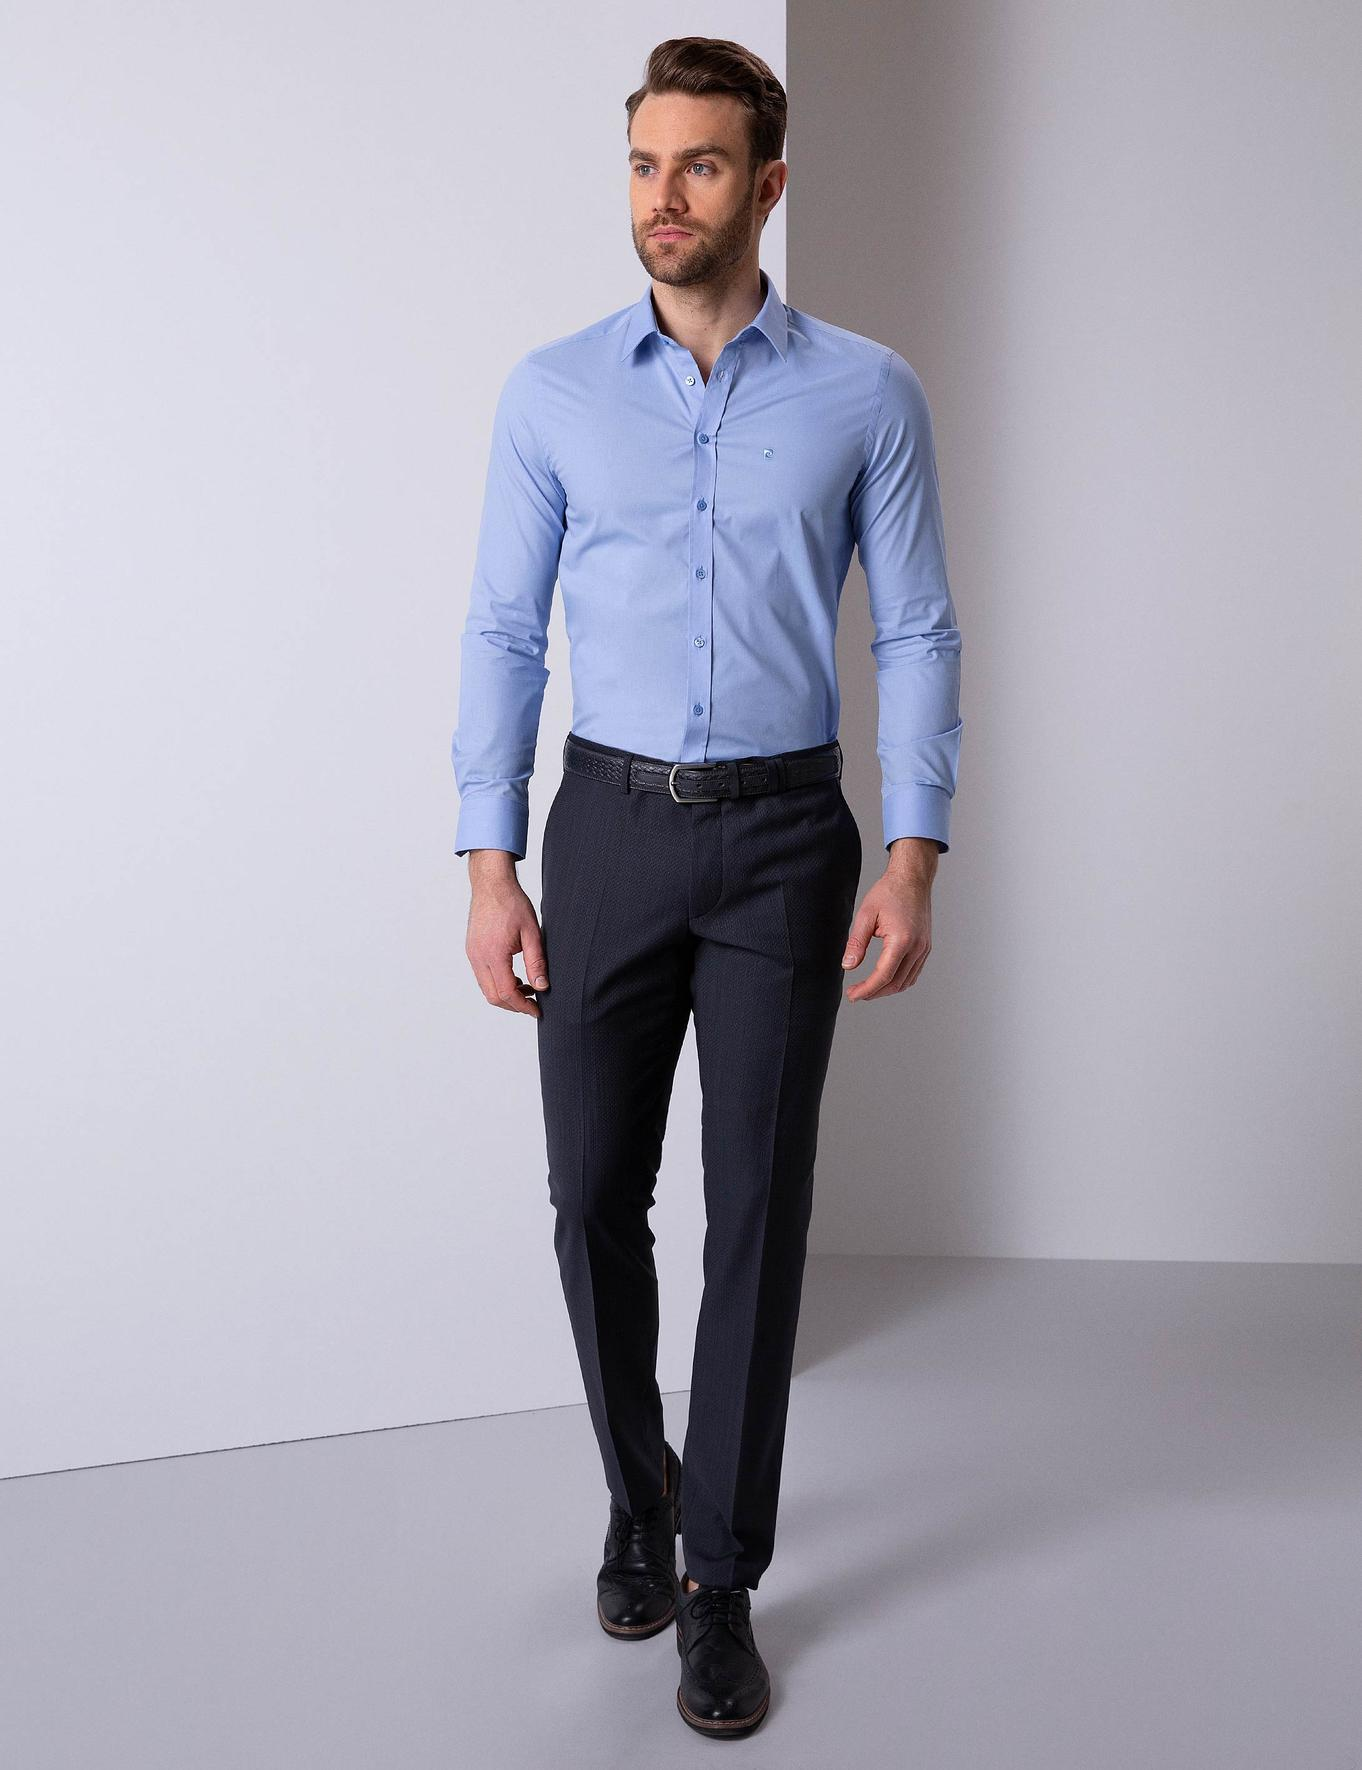 Mavi Slim Fit Basic Gömlek